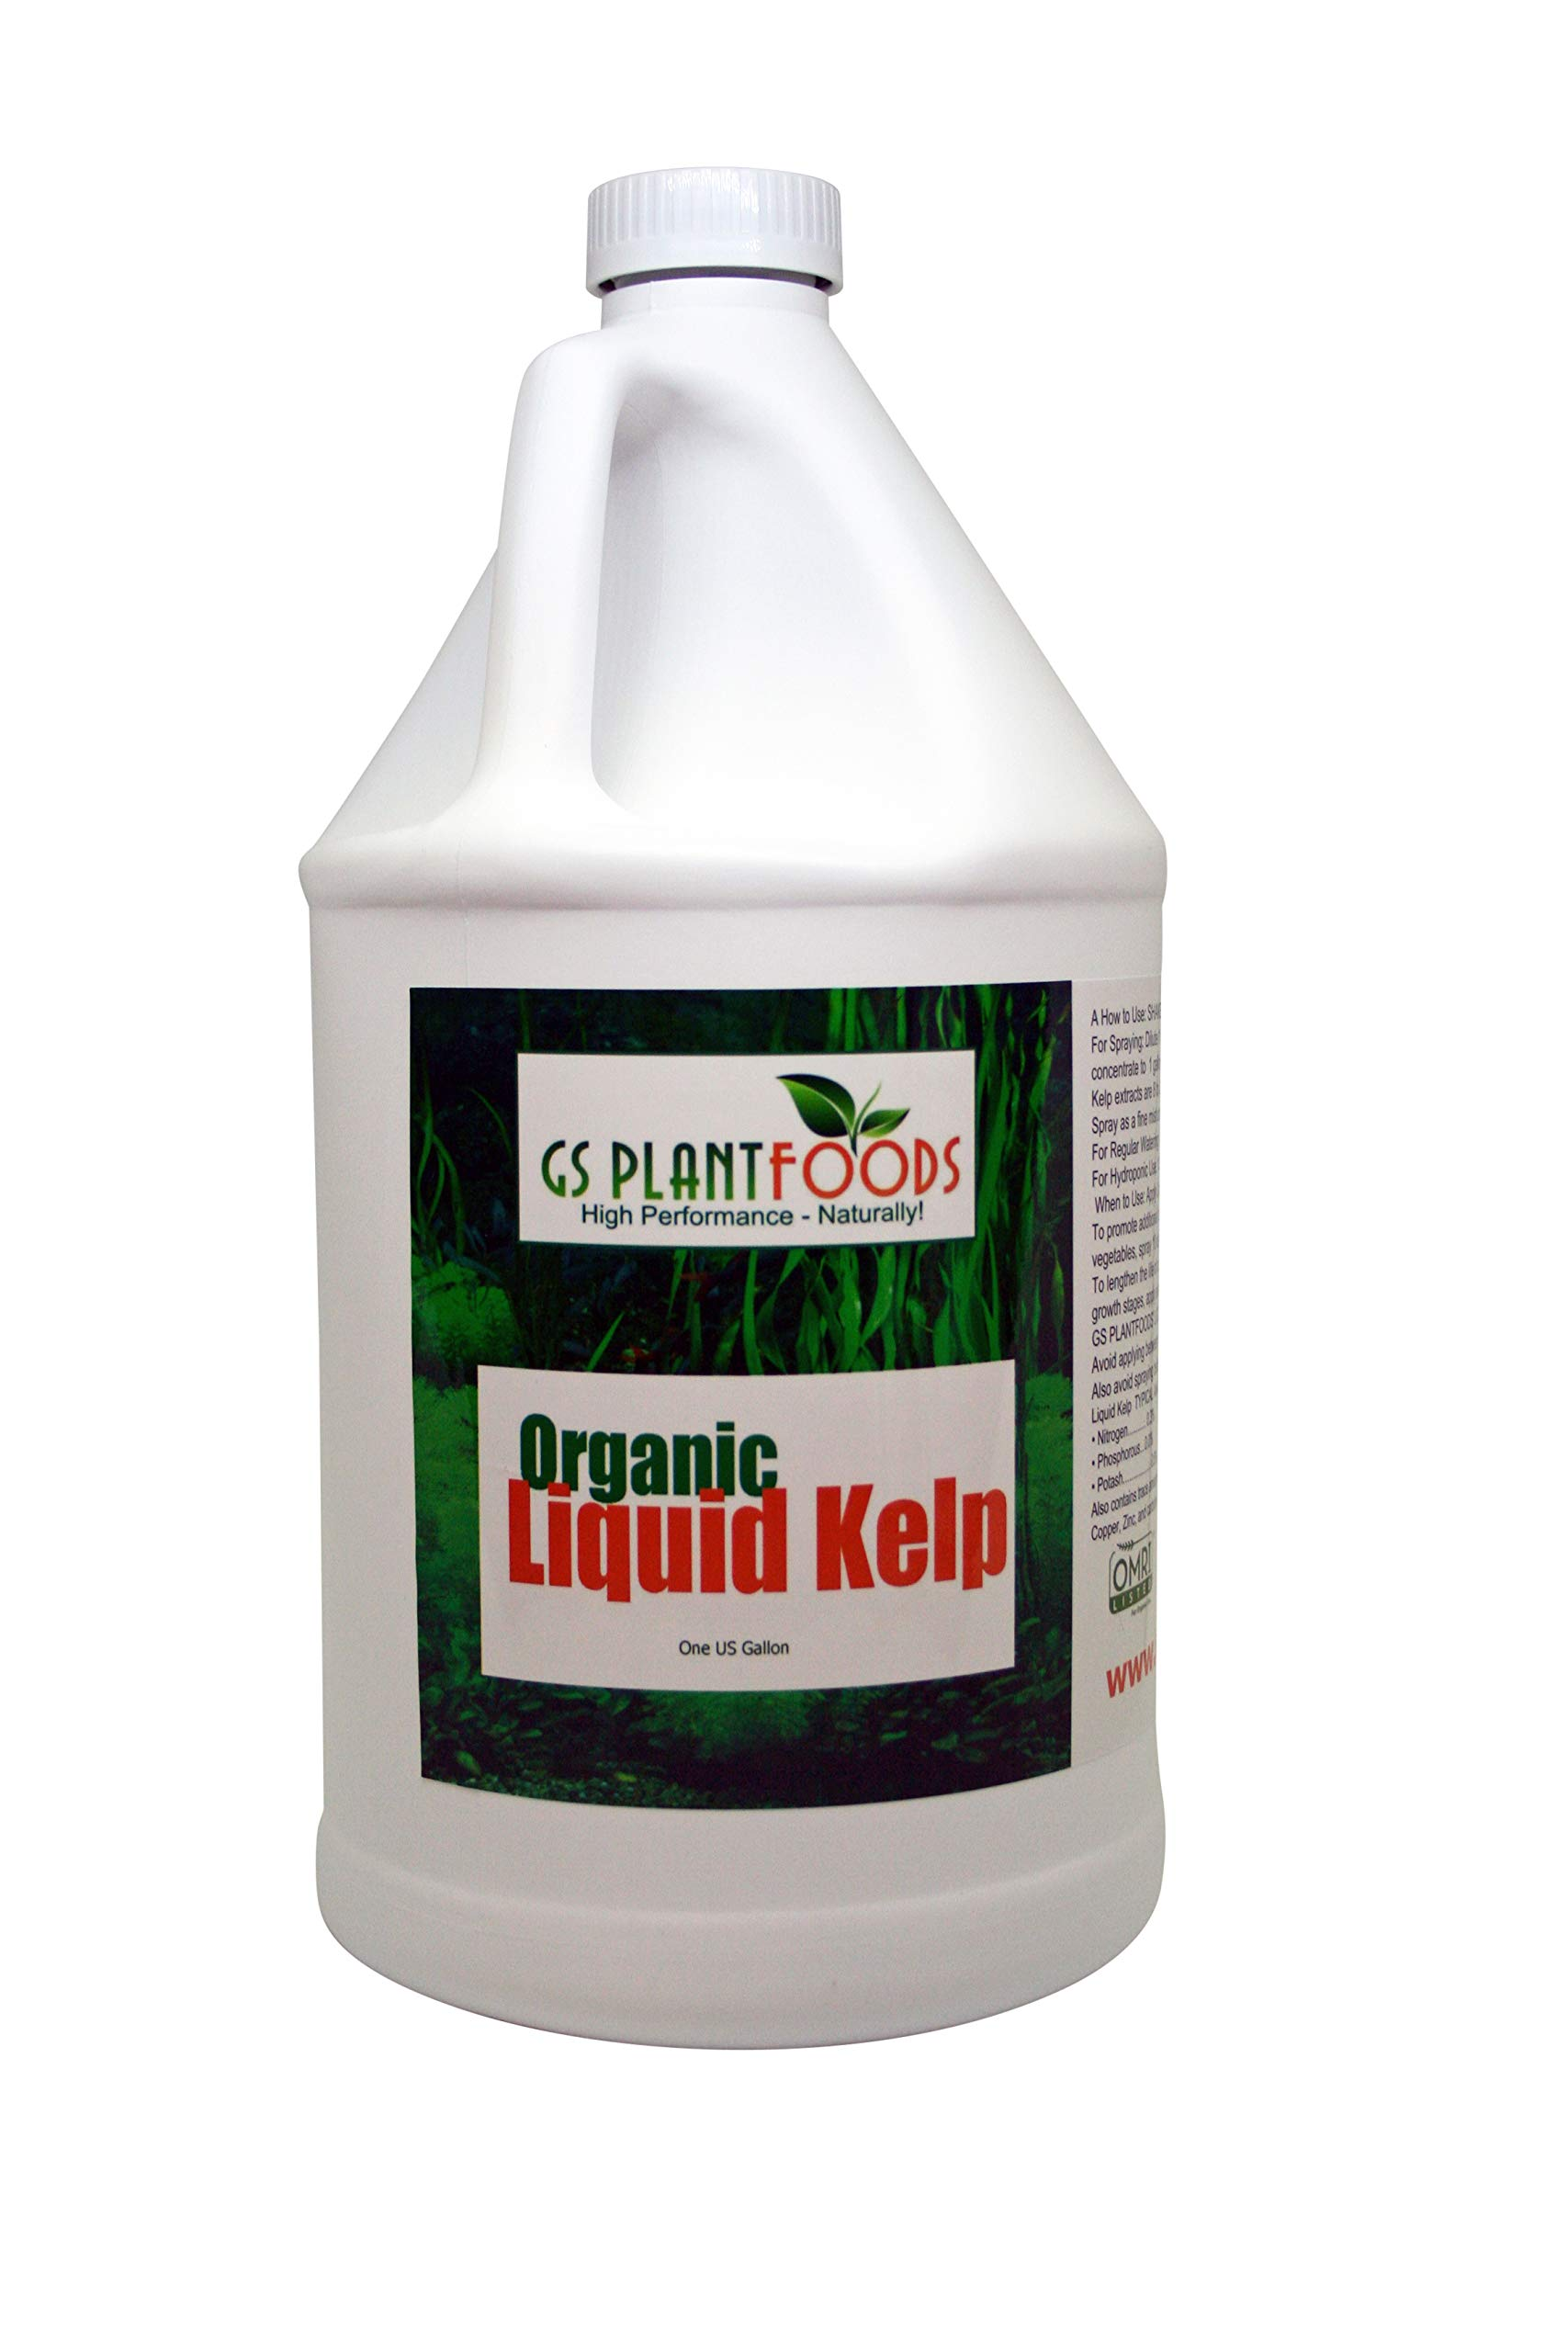 Liquid Kelp Organic Seaweed Extract 1 Gallon Fertilizer Concentrate by GS Plant Foods